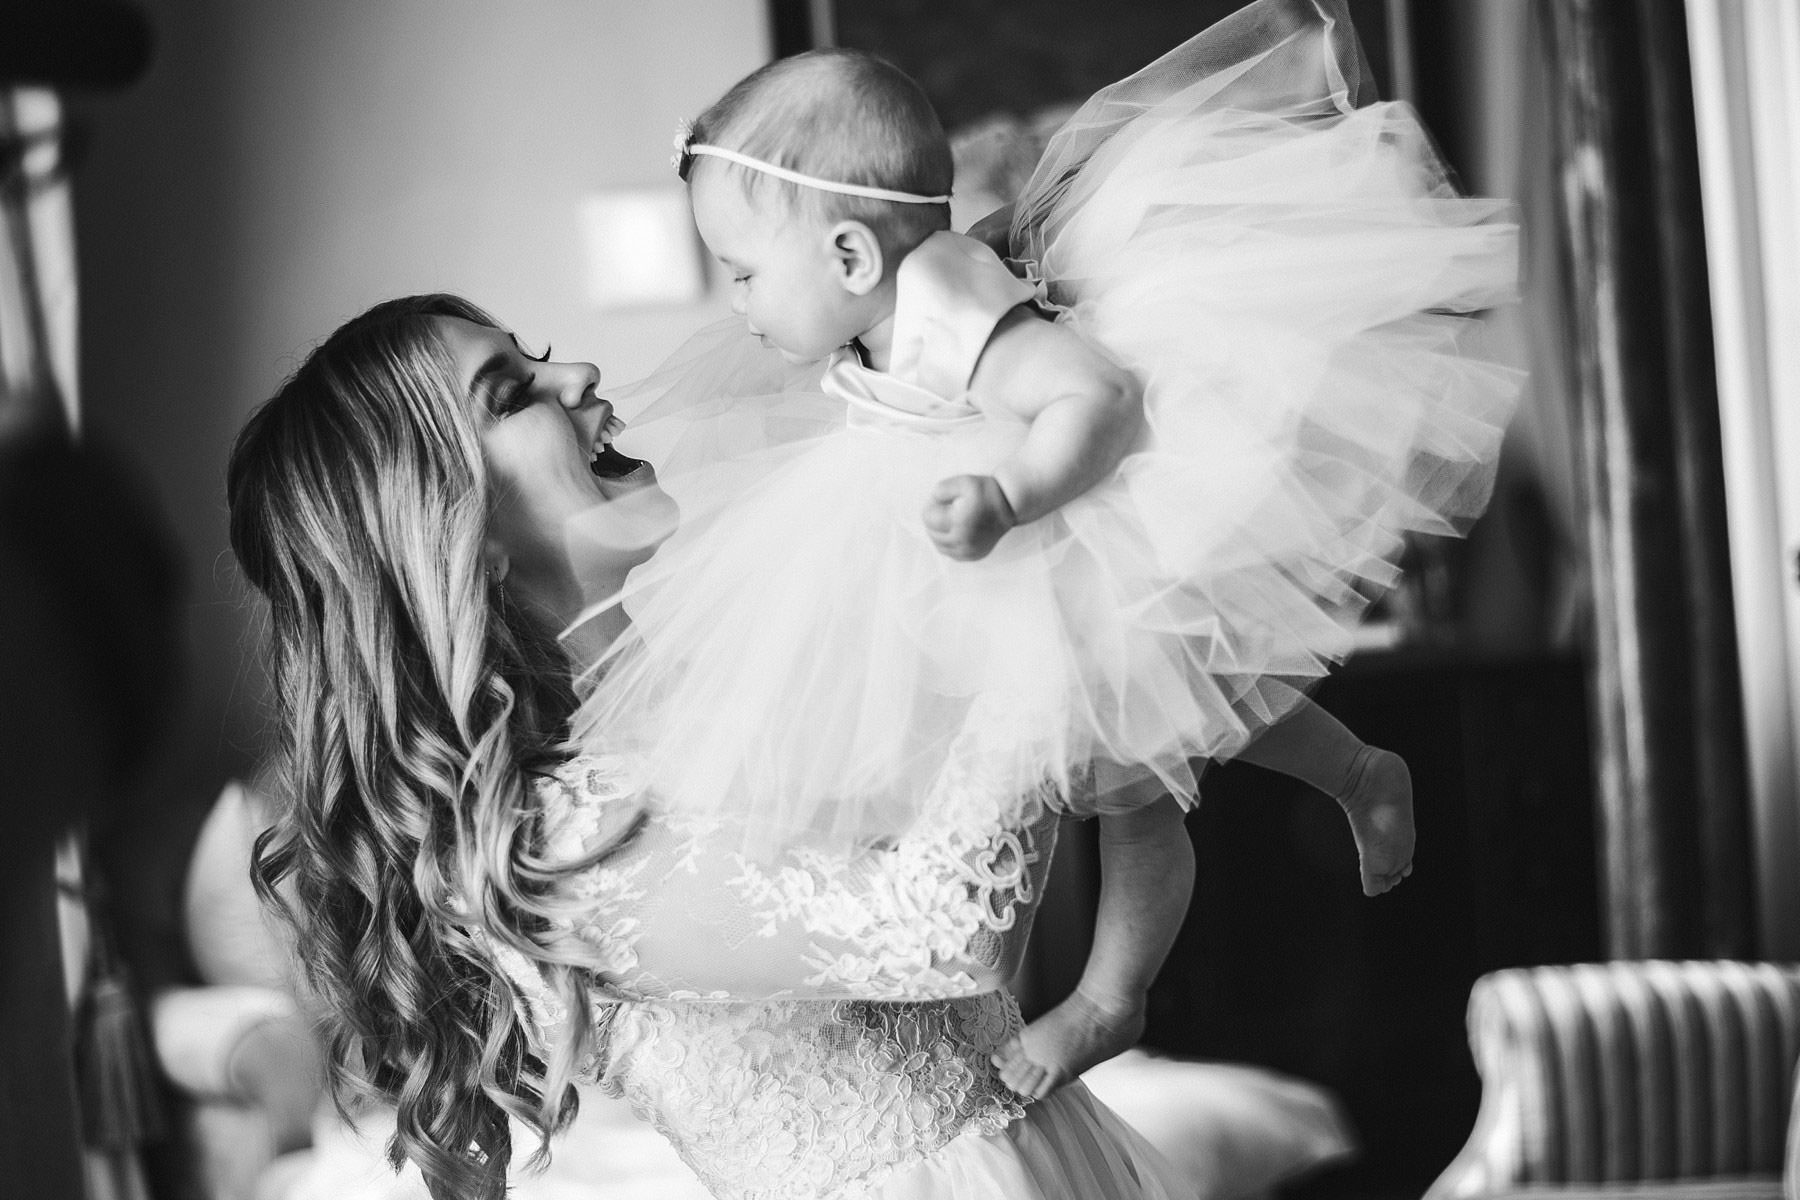 Lovely moment of the bride Cecily and her daughter during getting ready phase at Villa Mangiacane in Tuscany